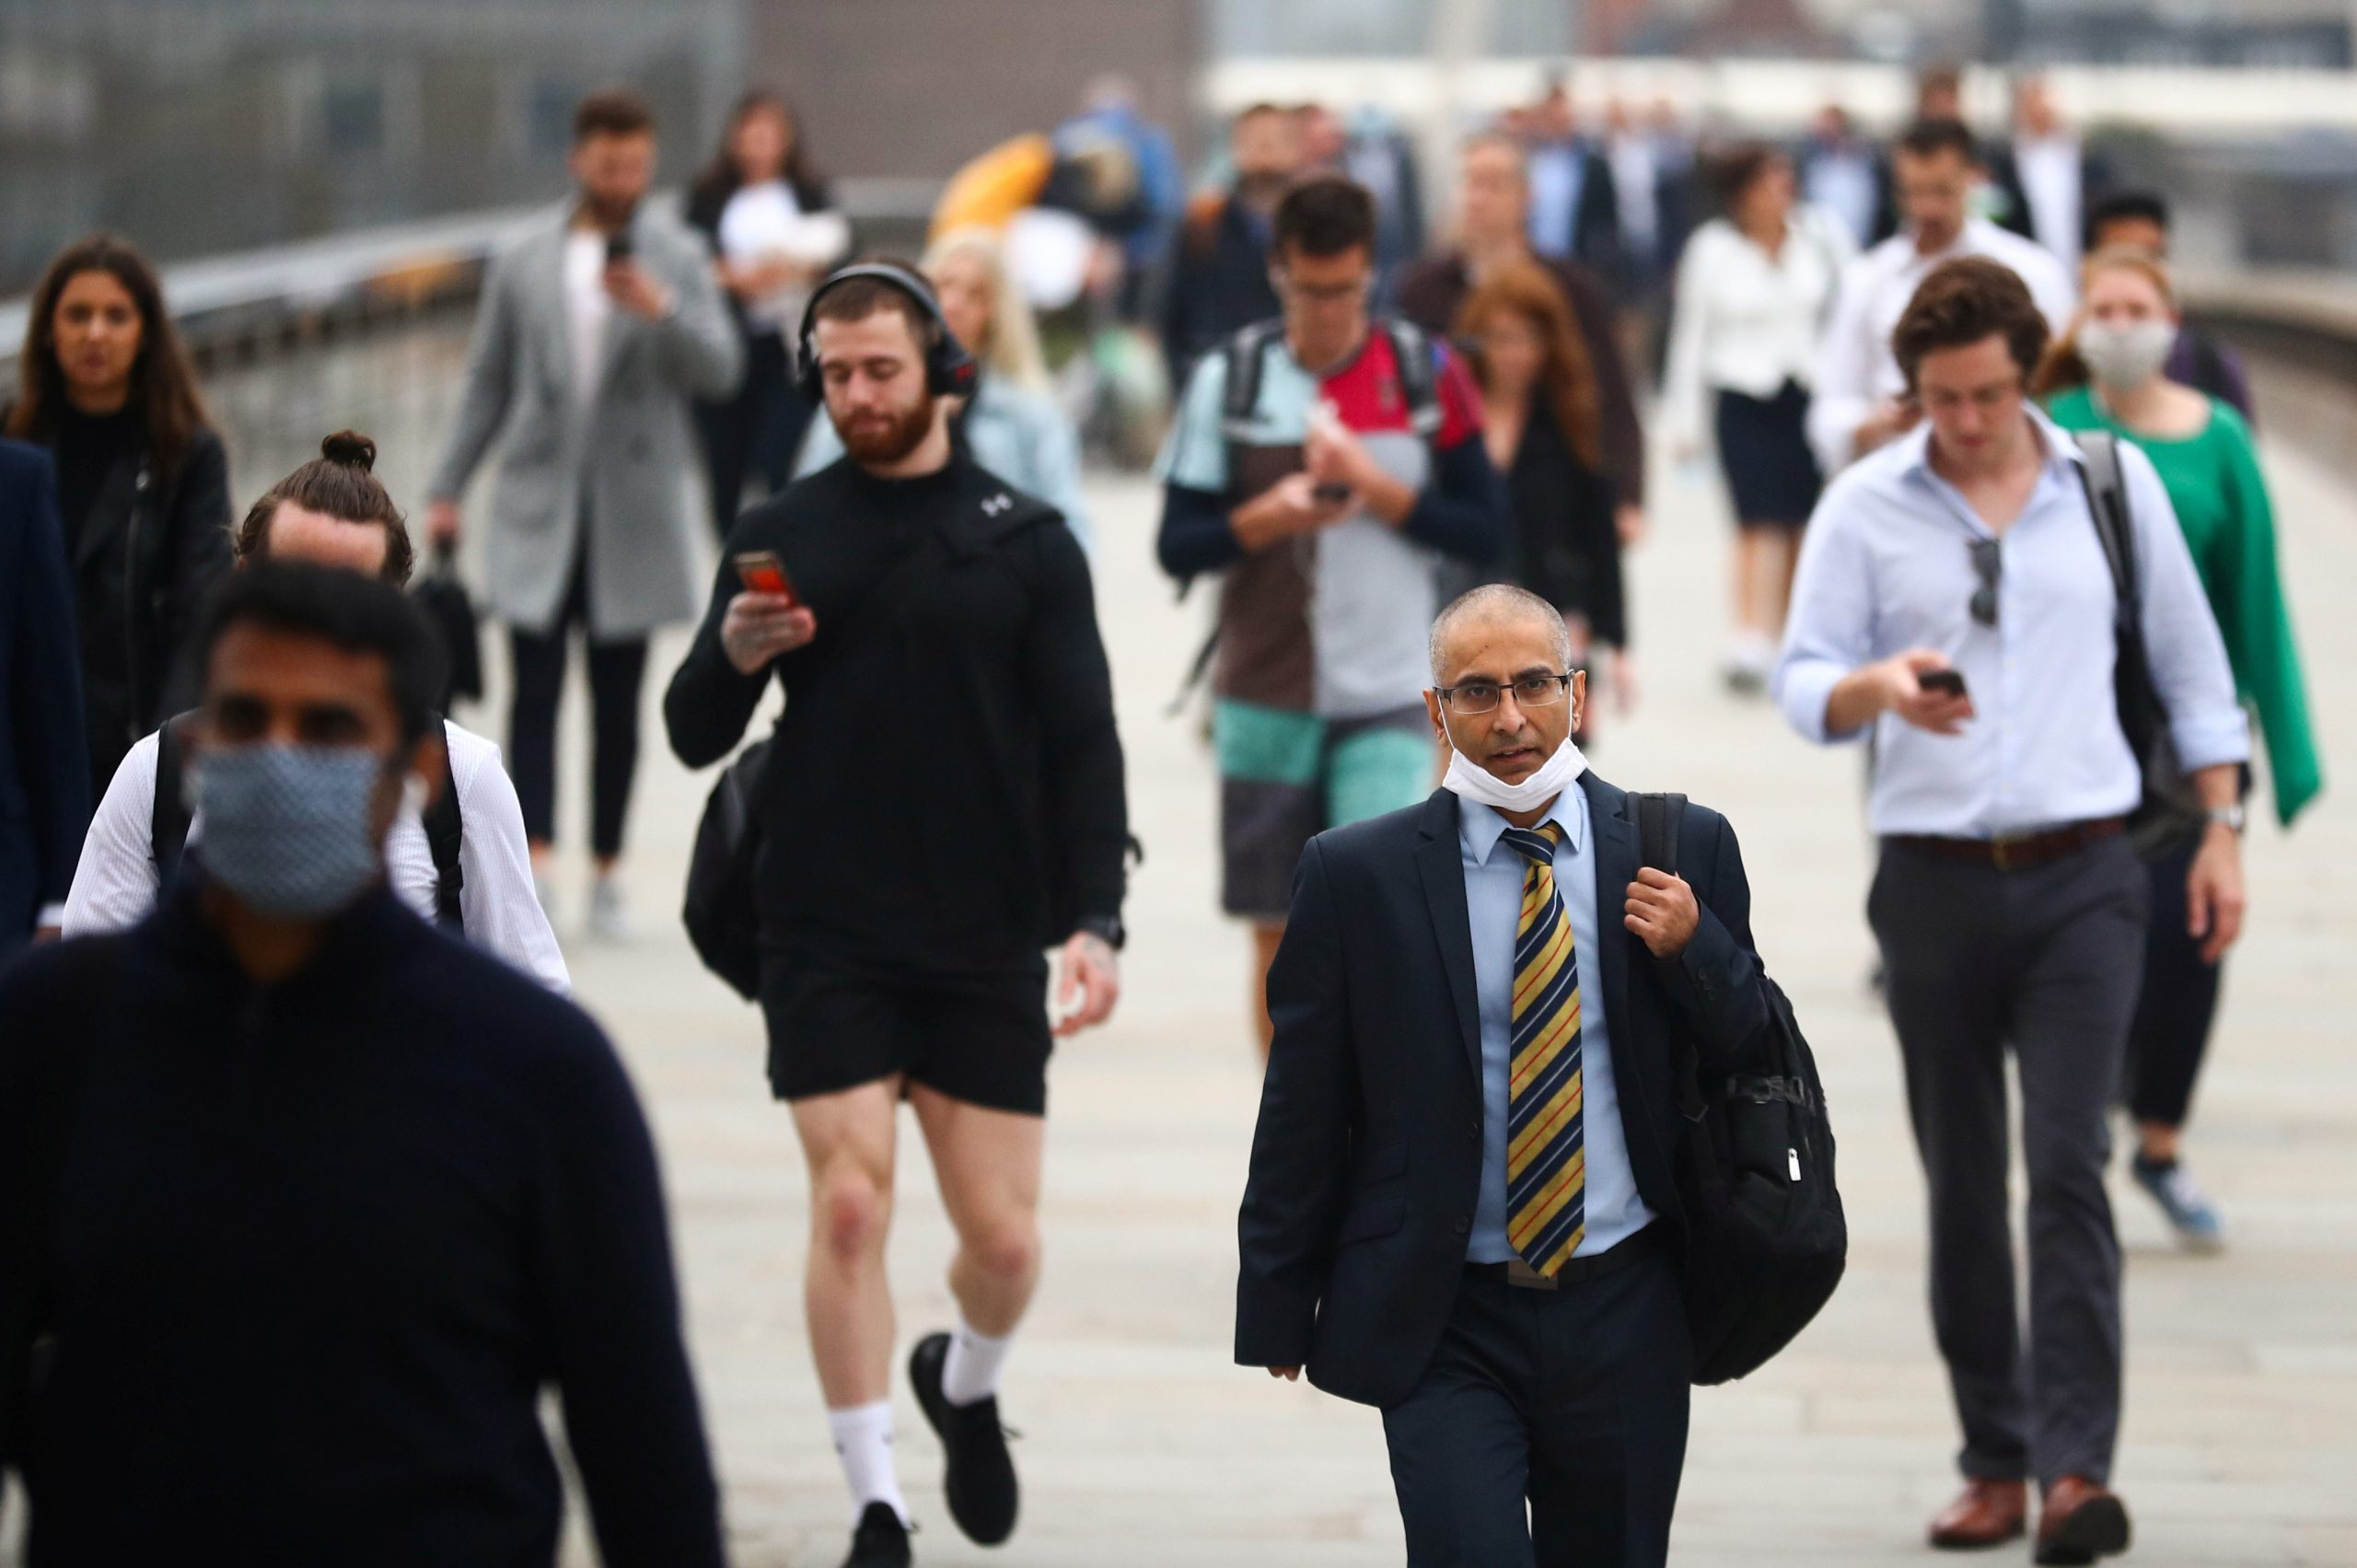 Commuters walk across the London Bridge during the morning rush hour on September 21, 2020. London could soon see local curbs being imposed to arrest the soaring coronavirus infection rate. (REUTERS/Hannah McKay)